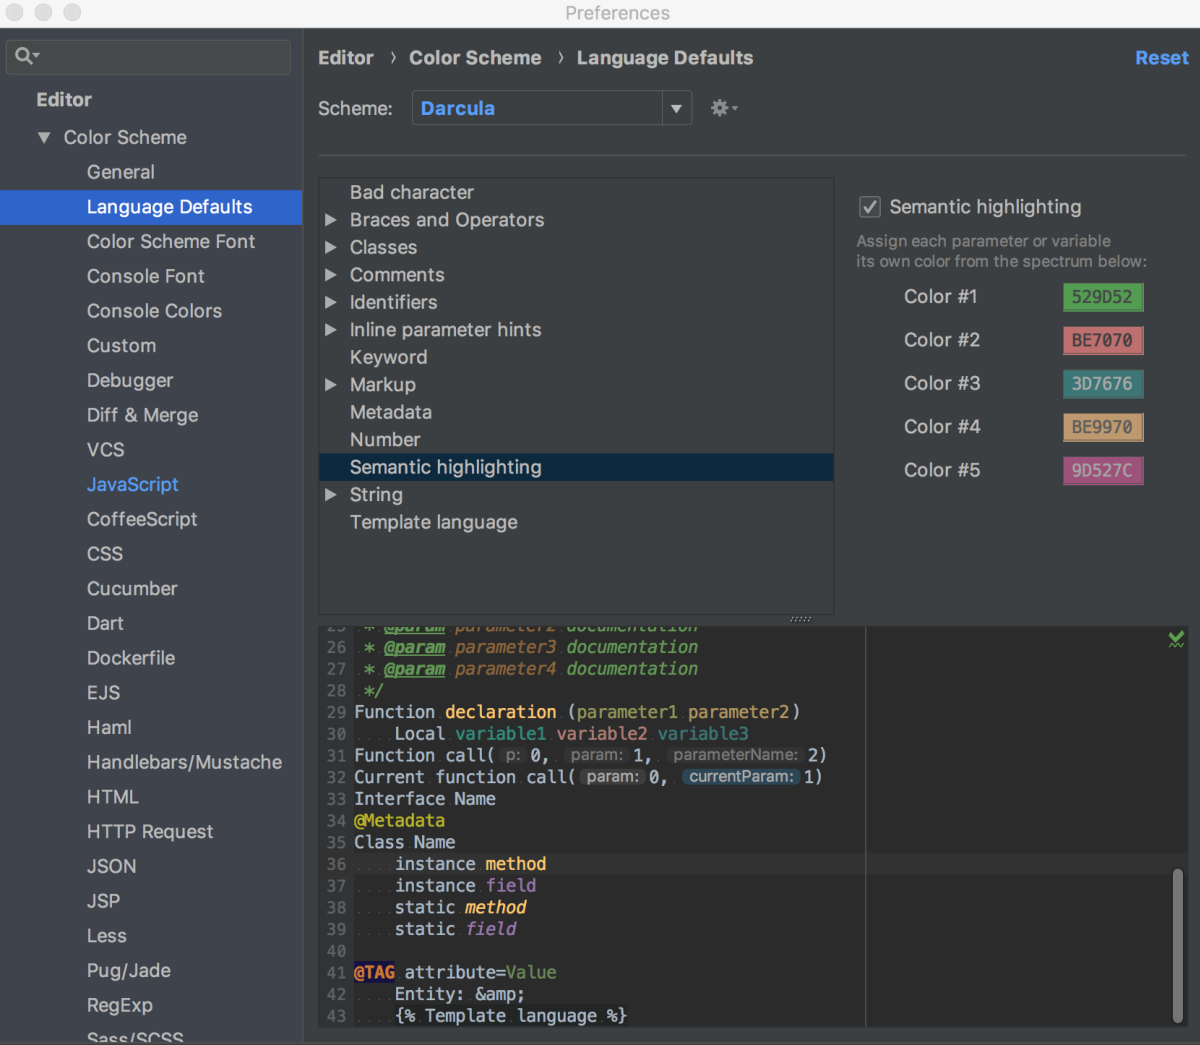 ws configure colors and fonts settings editor language semantic highlighting